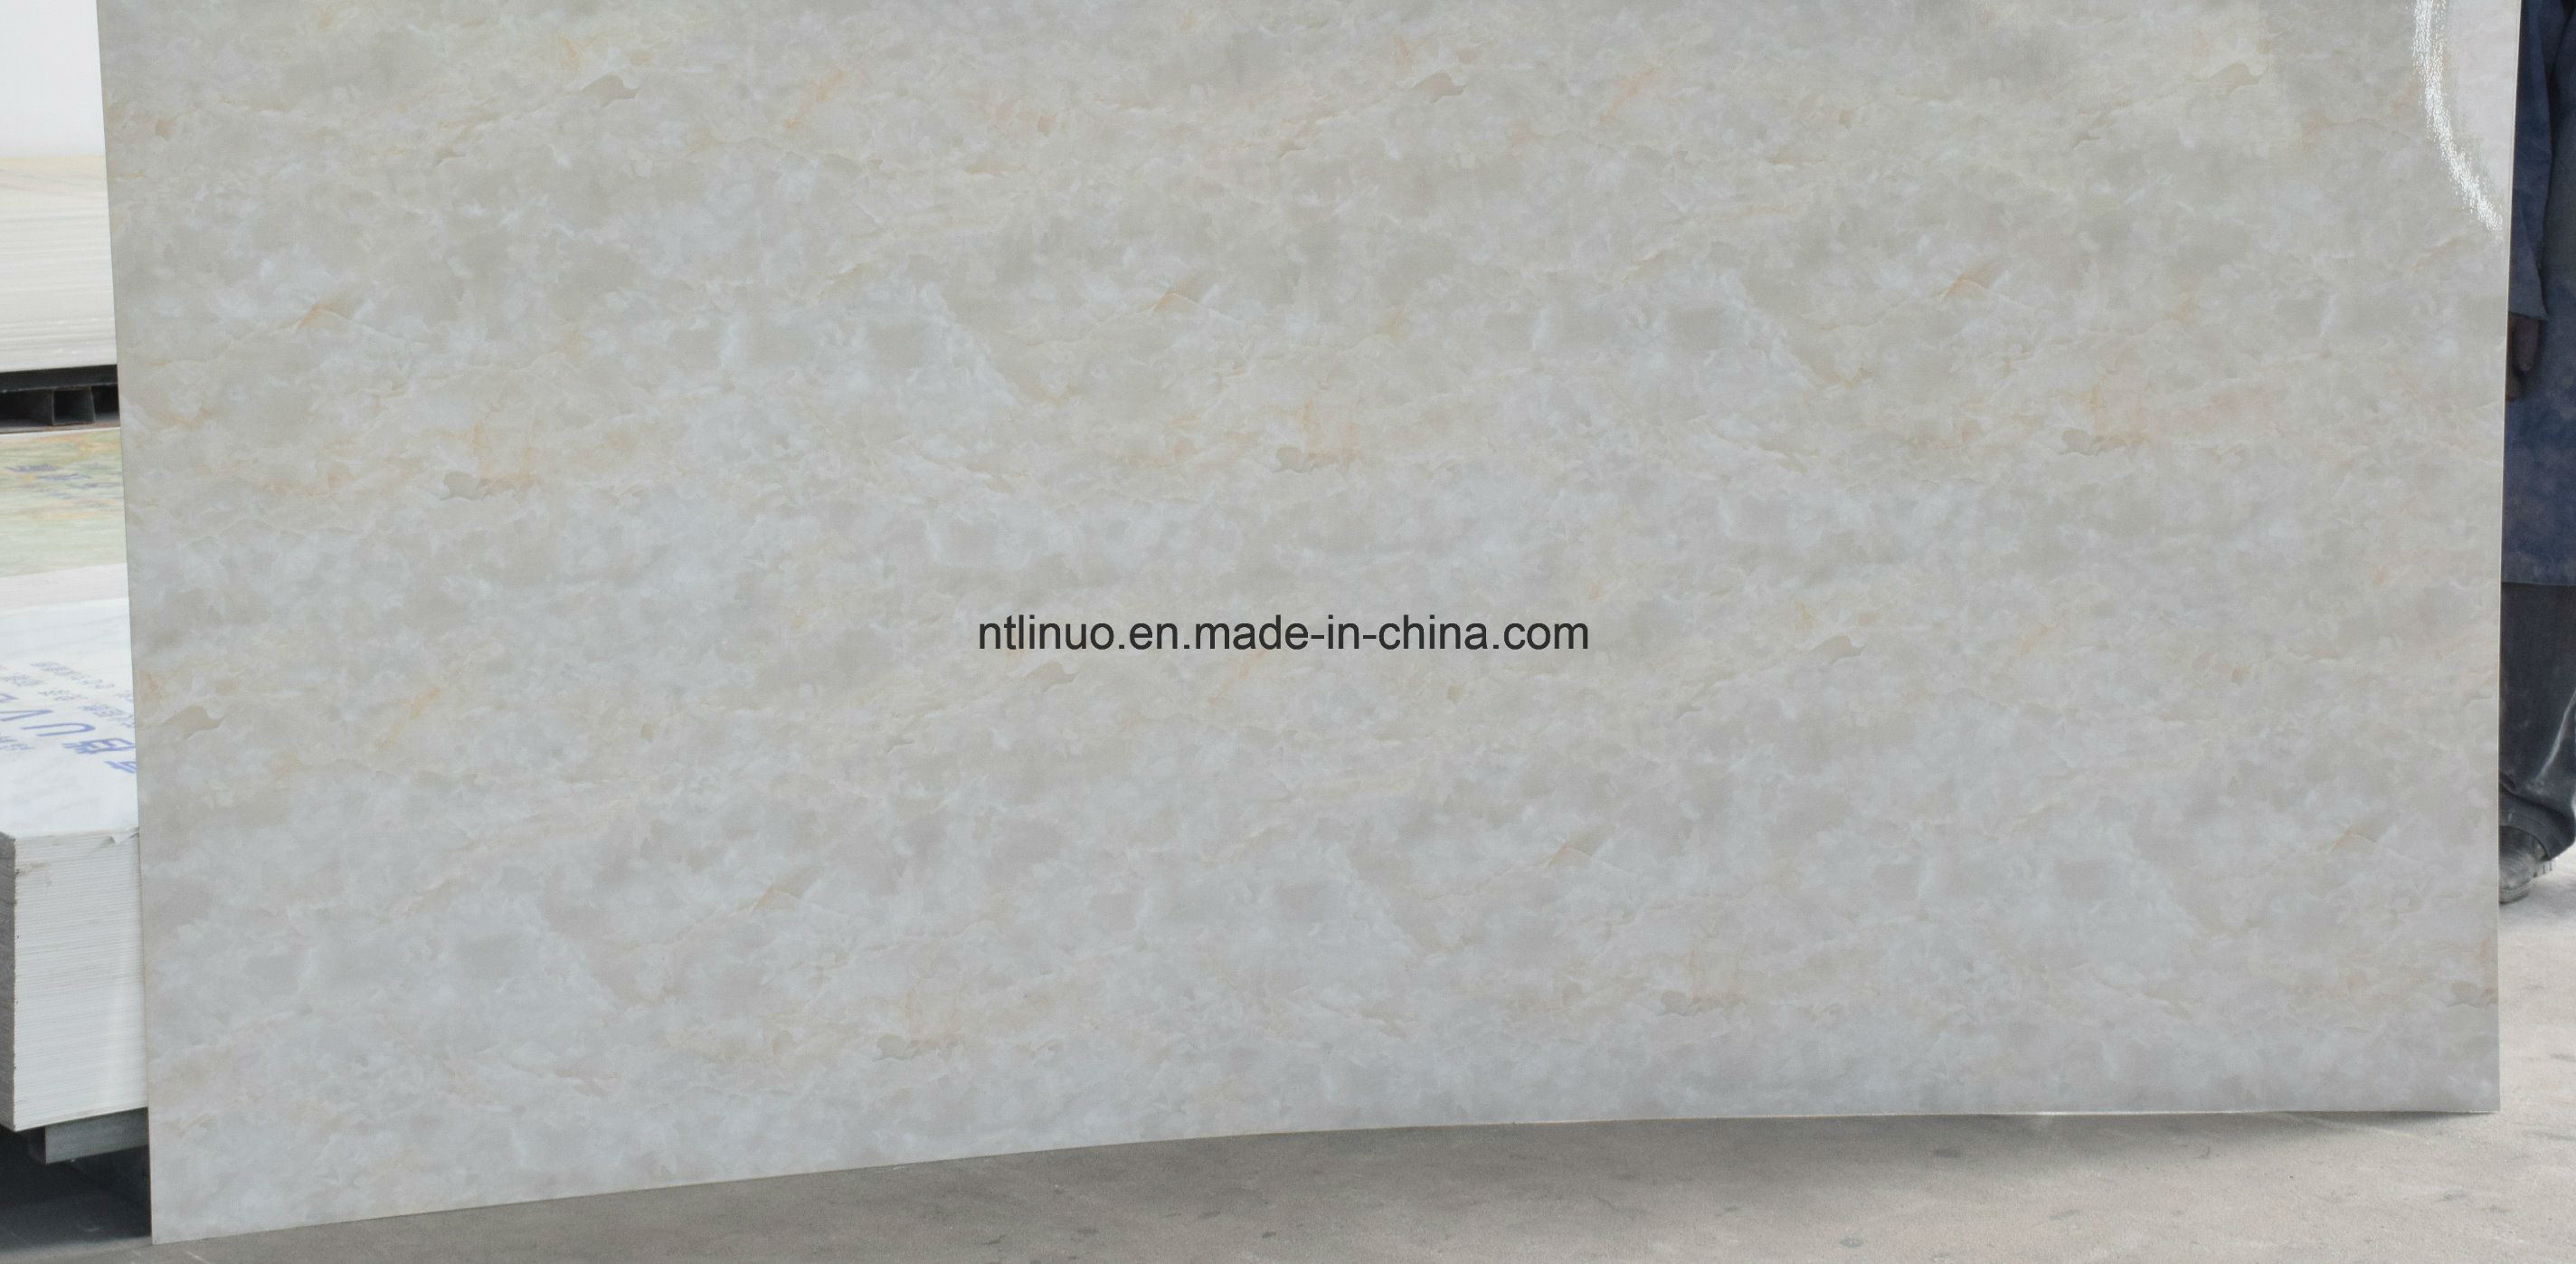 High Glossy Uv Coated Marble Texture Board, Pvc Wall Panel